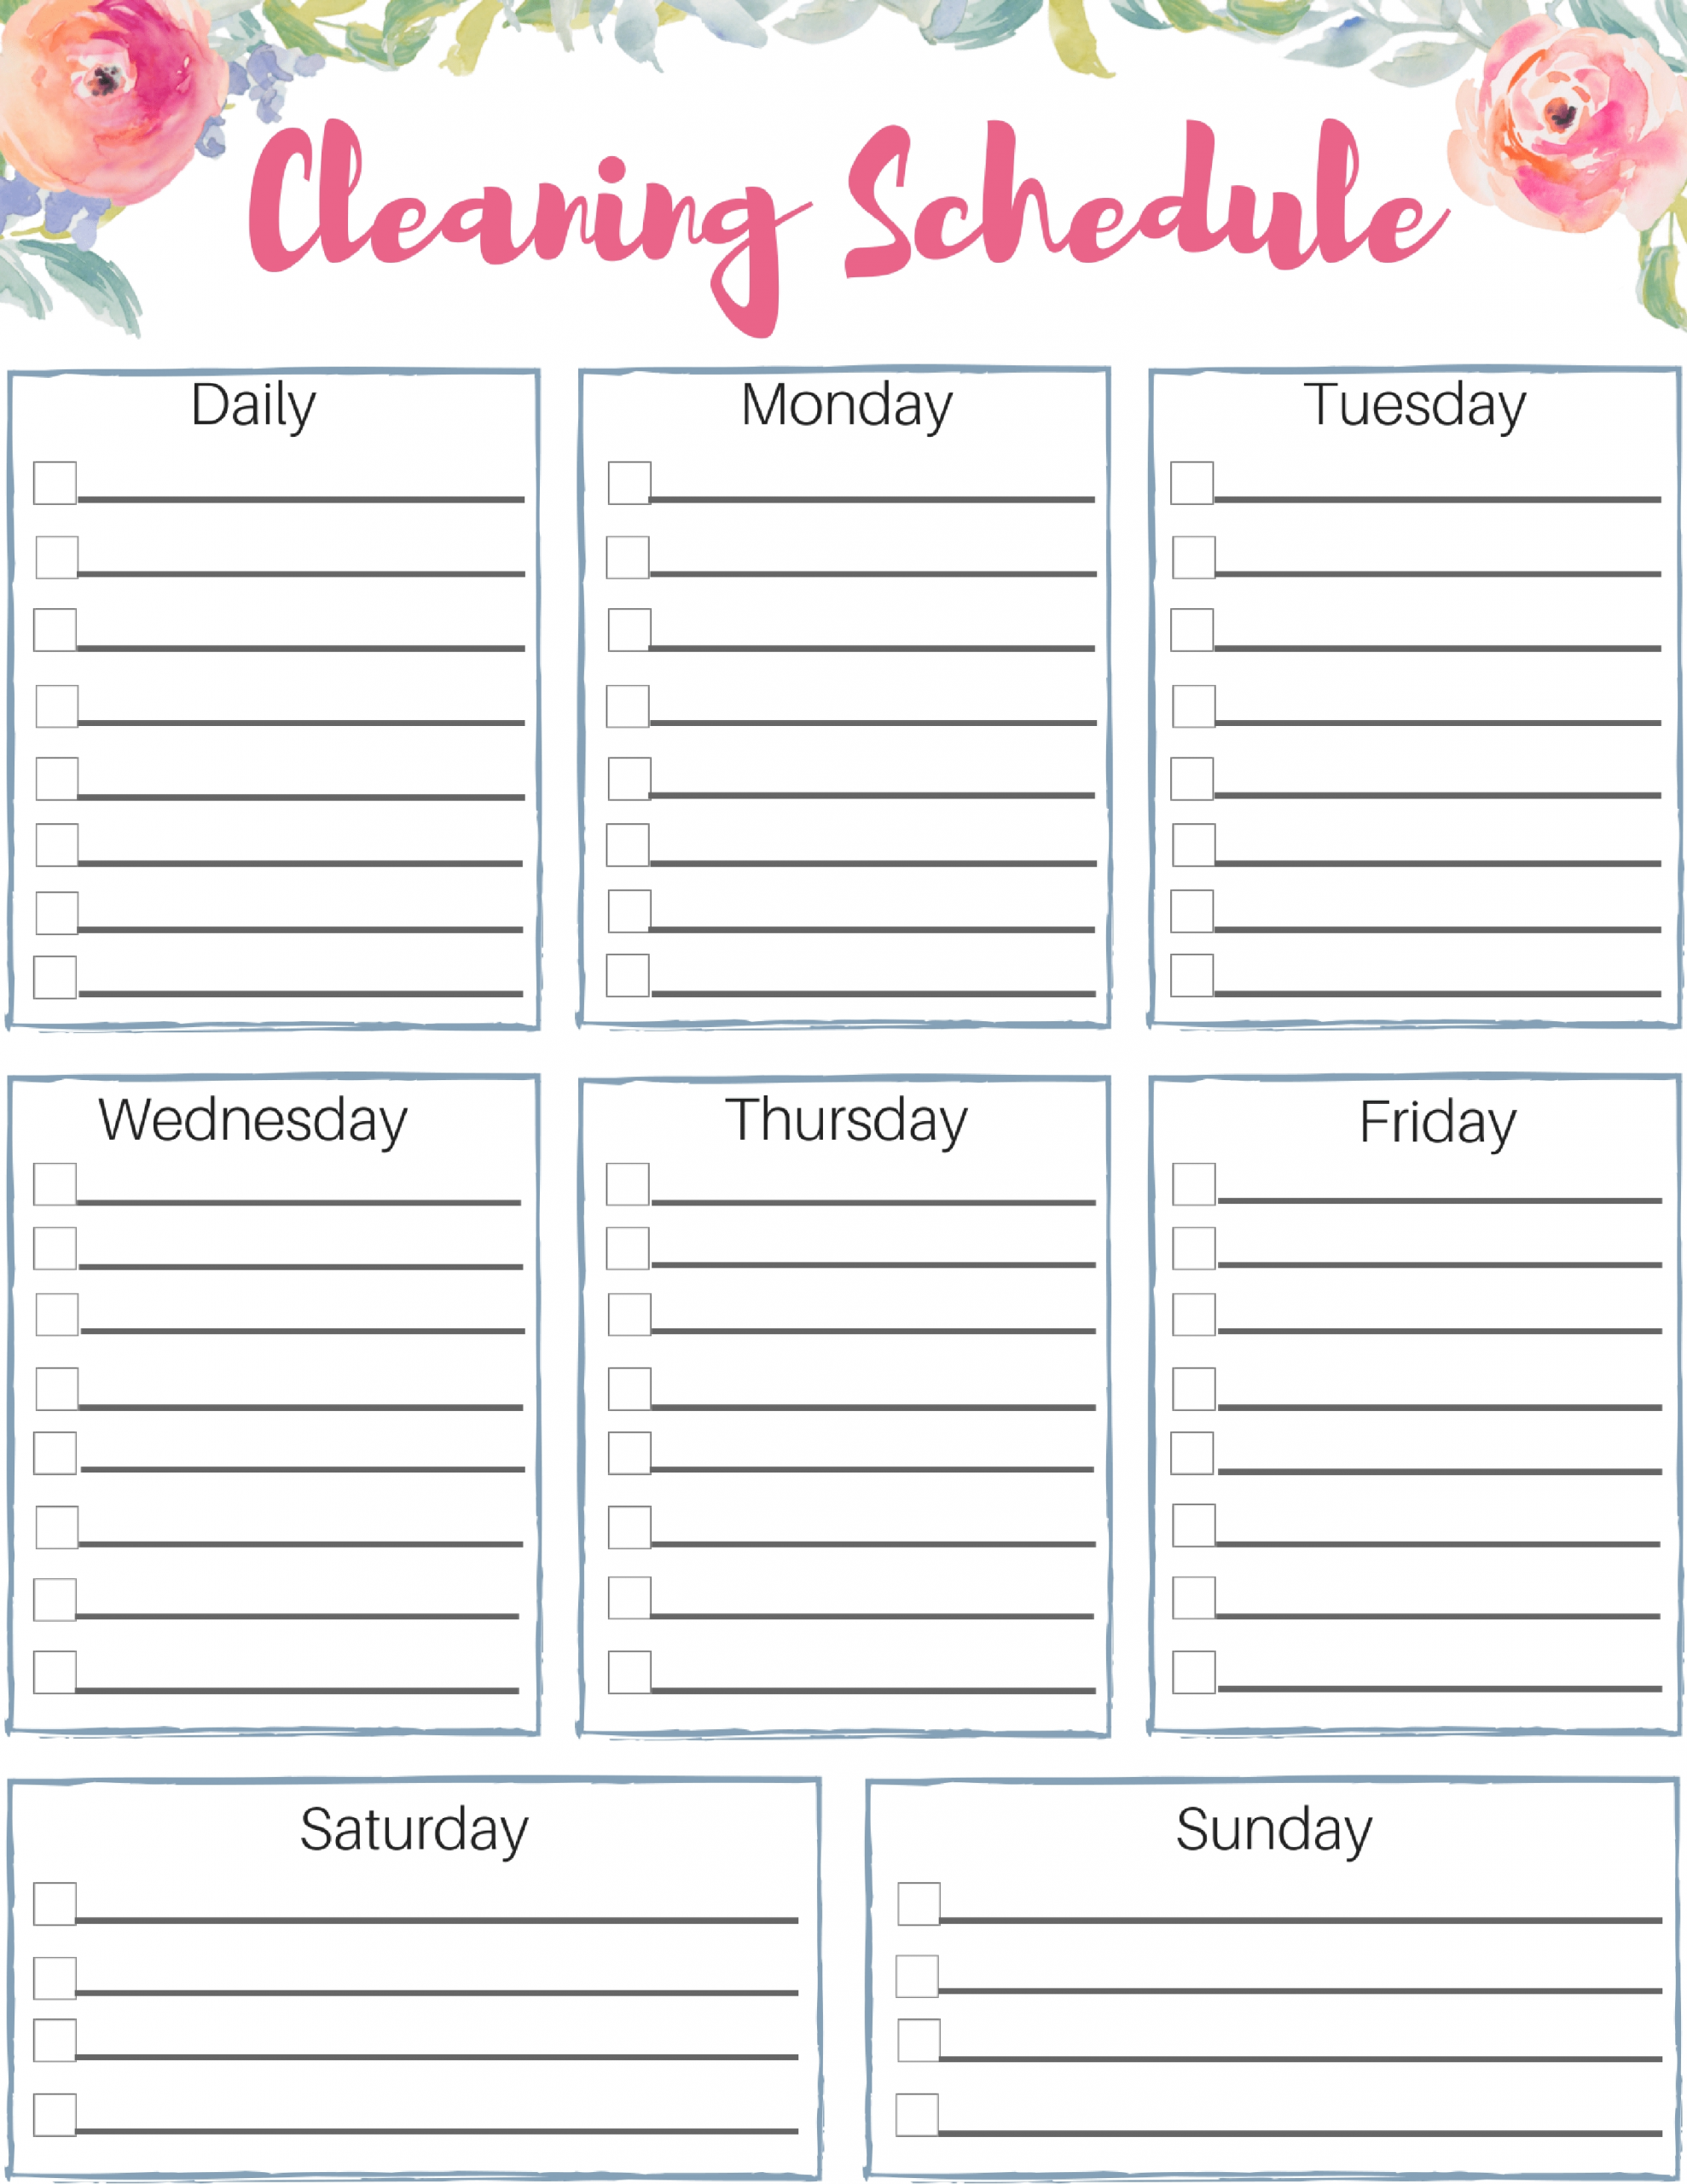 Free Customizable Cleaning Schedule. Check Out This Great